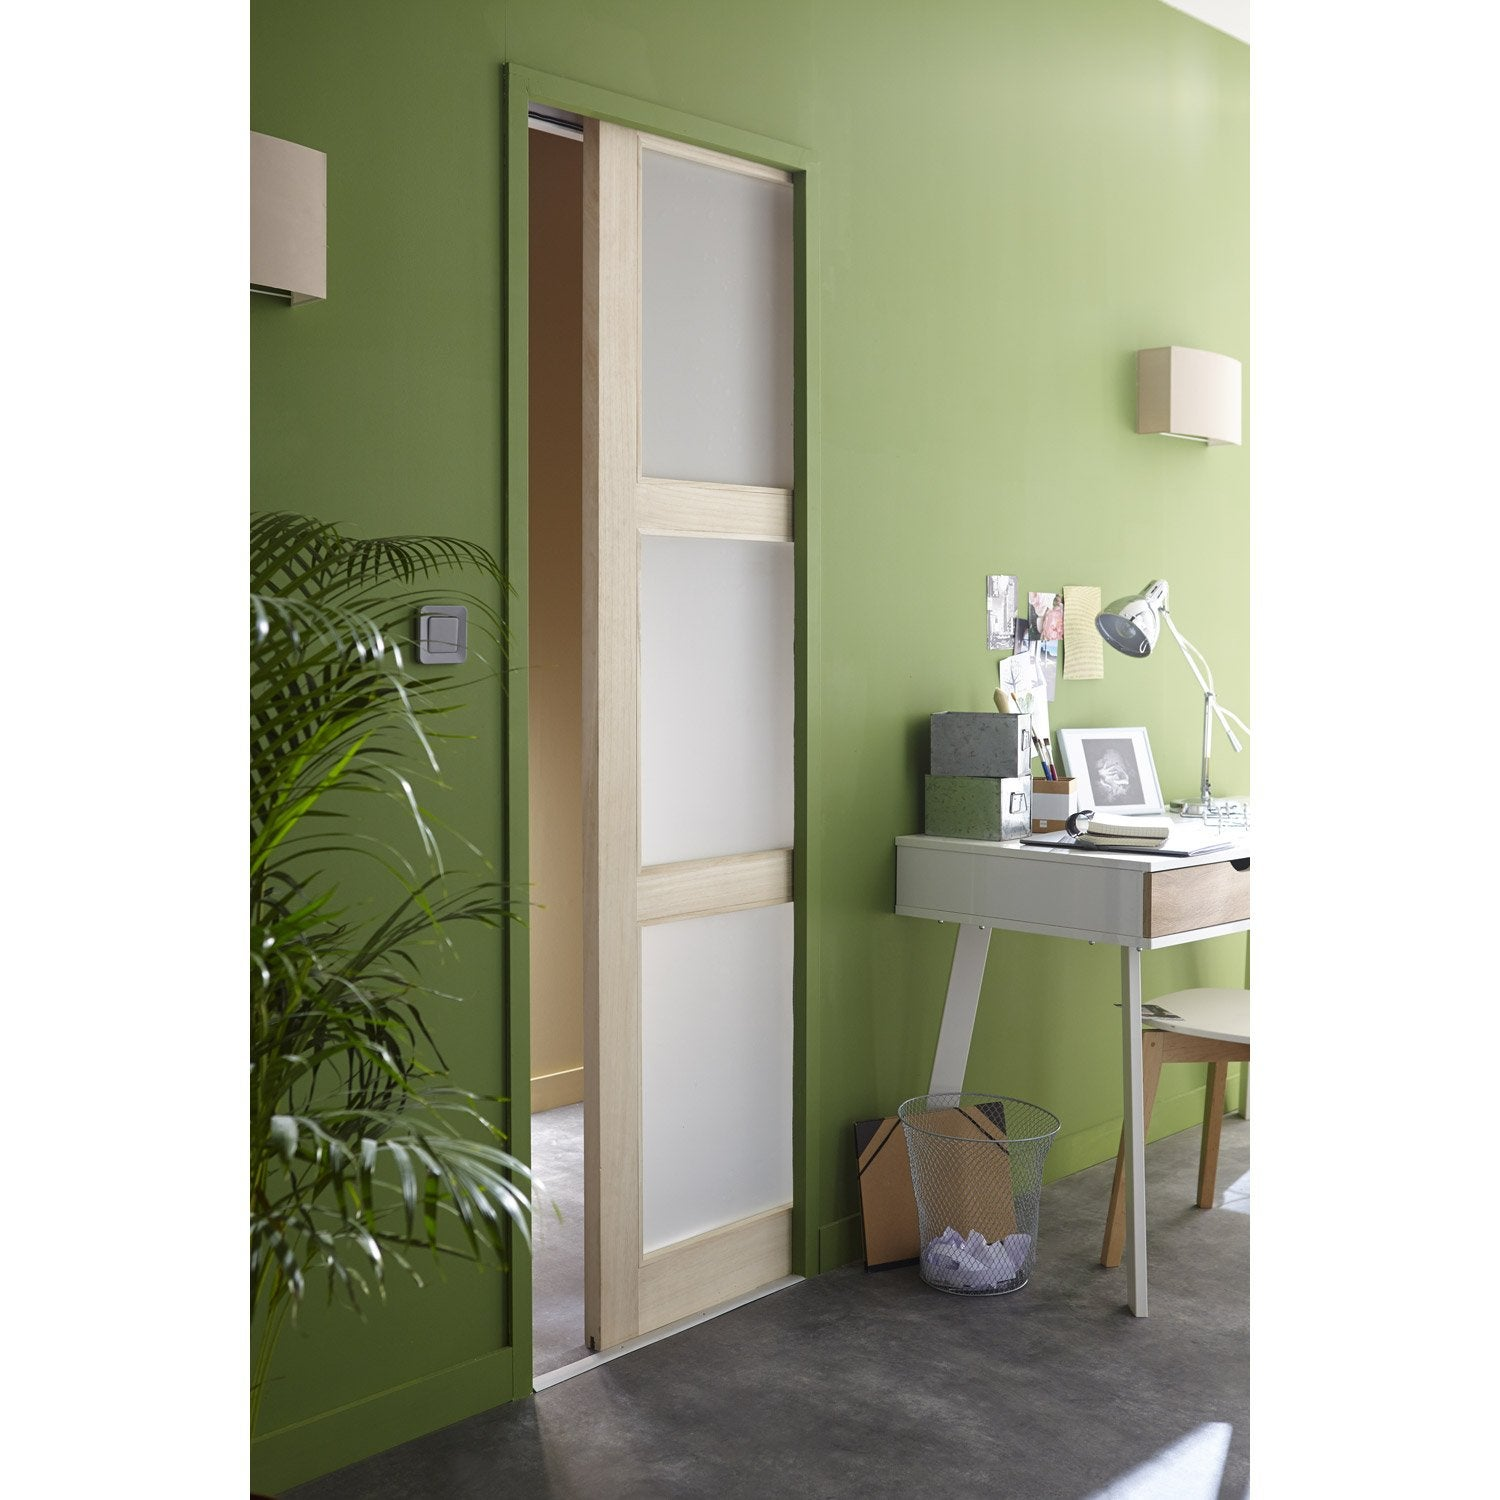 Ensemble porte coulissante bowen paulownia avec galandage for Porte salon coulissante